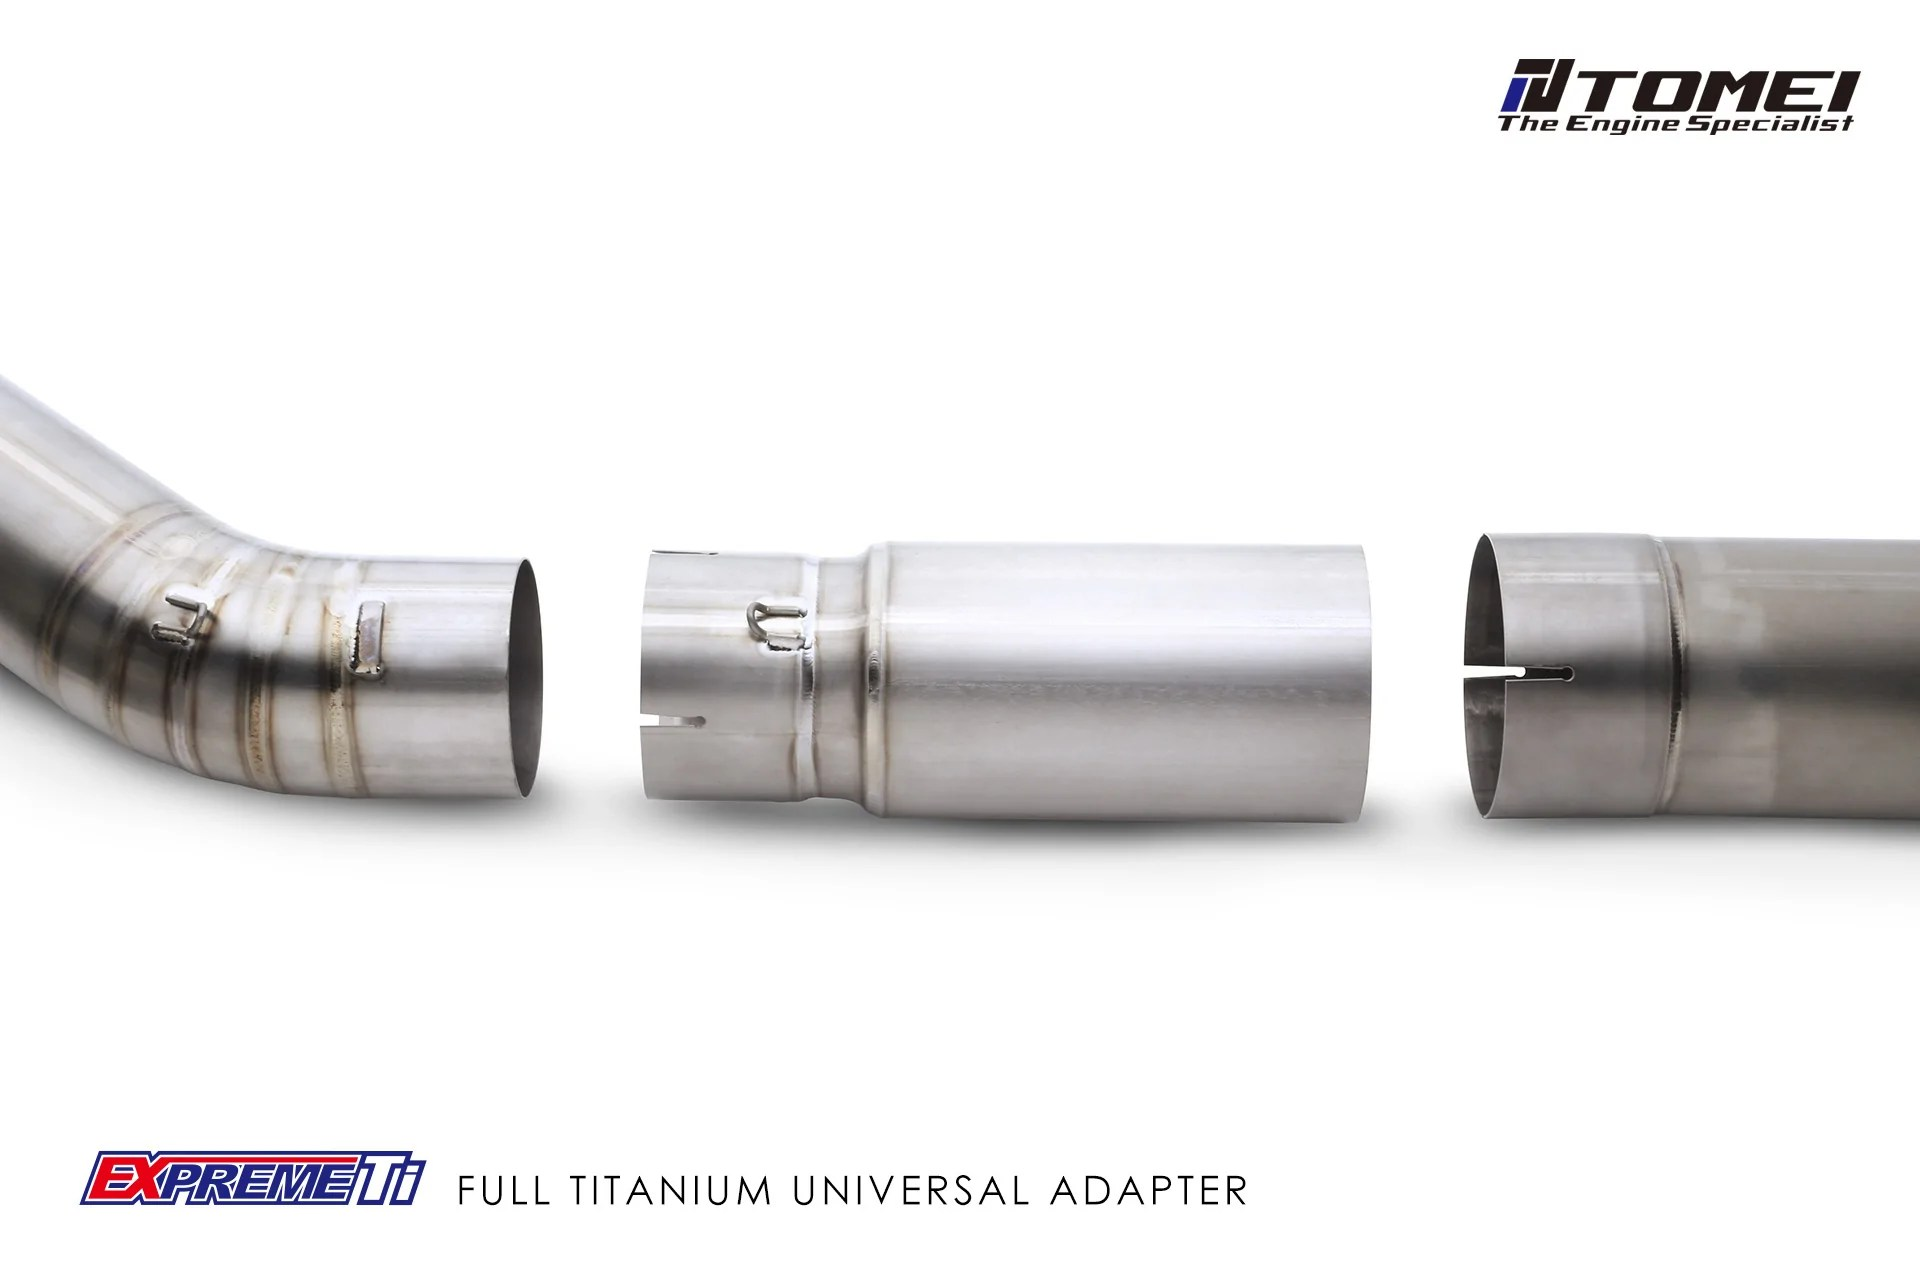 tomei expreme titanium 4 inch exhaust pipe adapter for toyota supra jza80